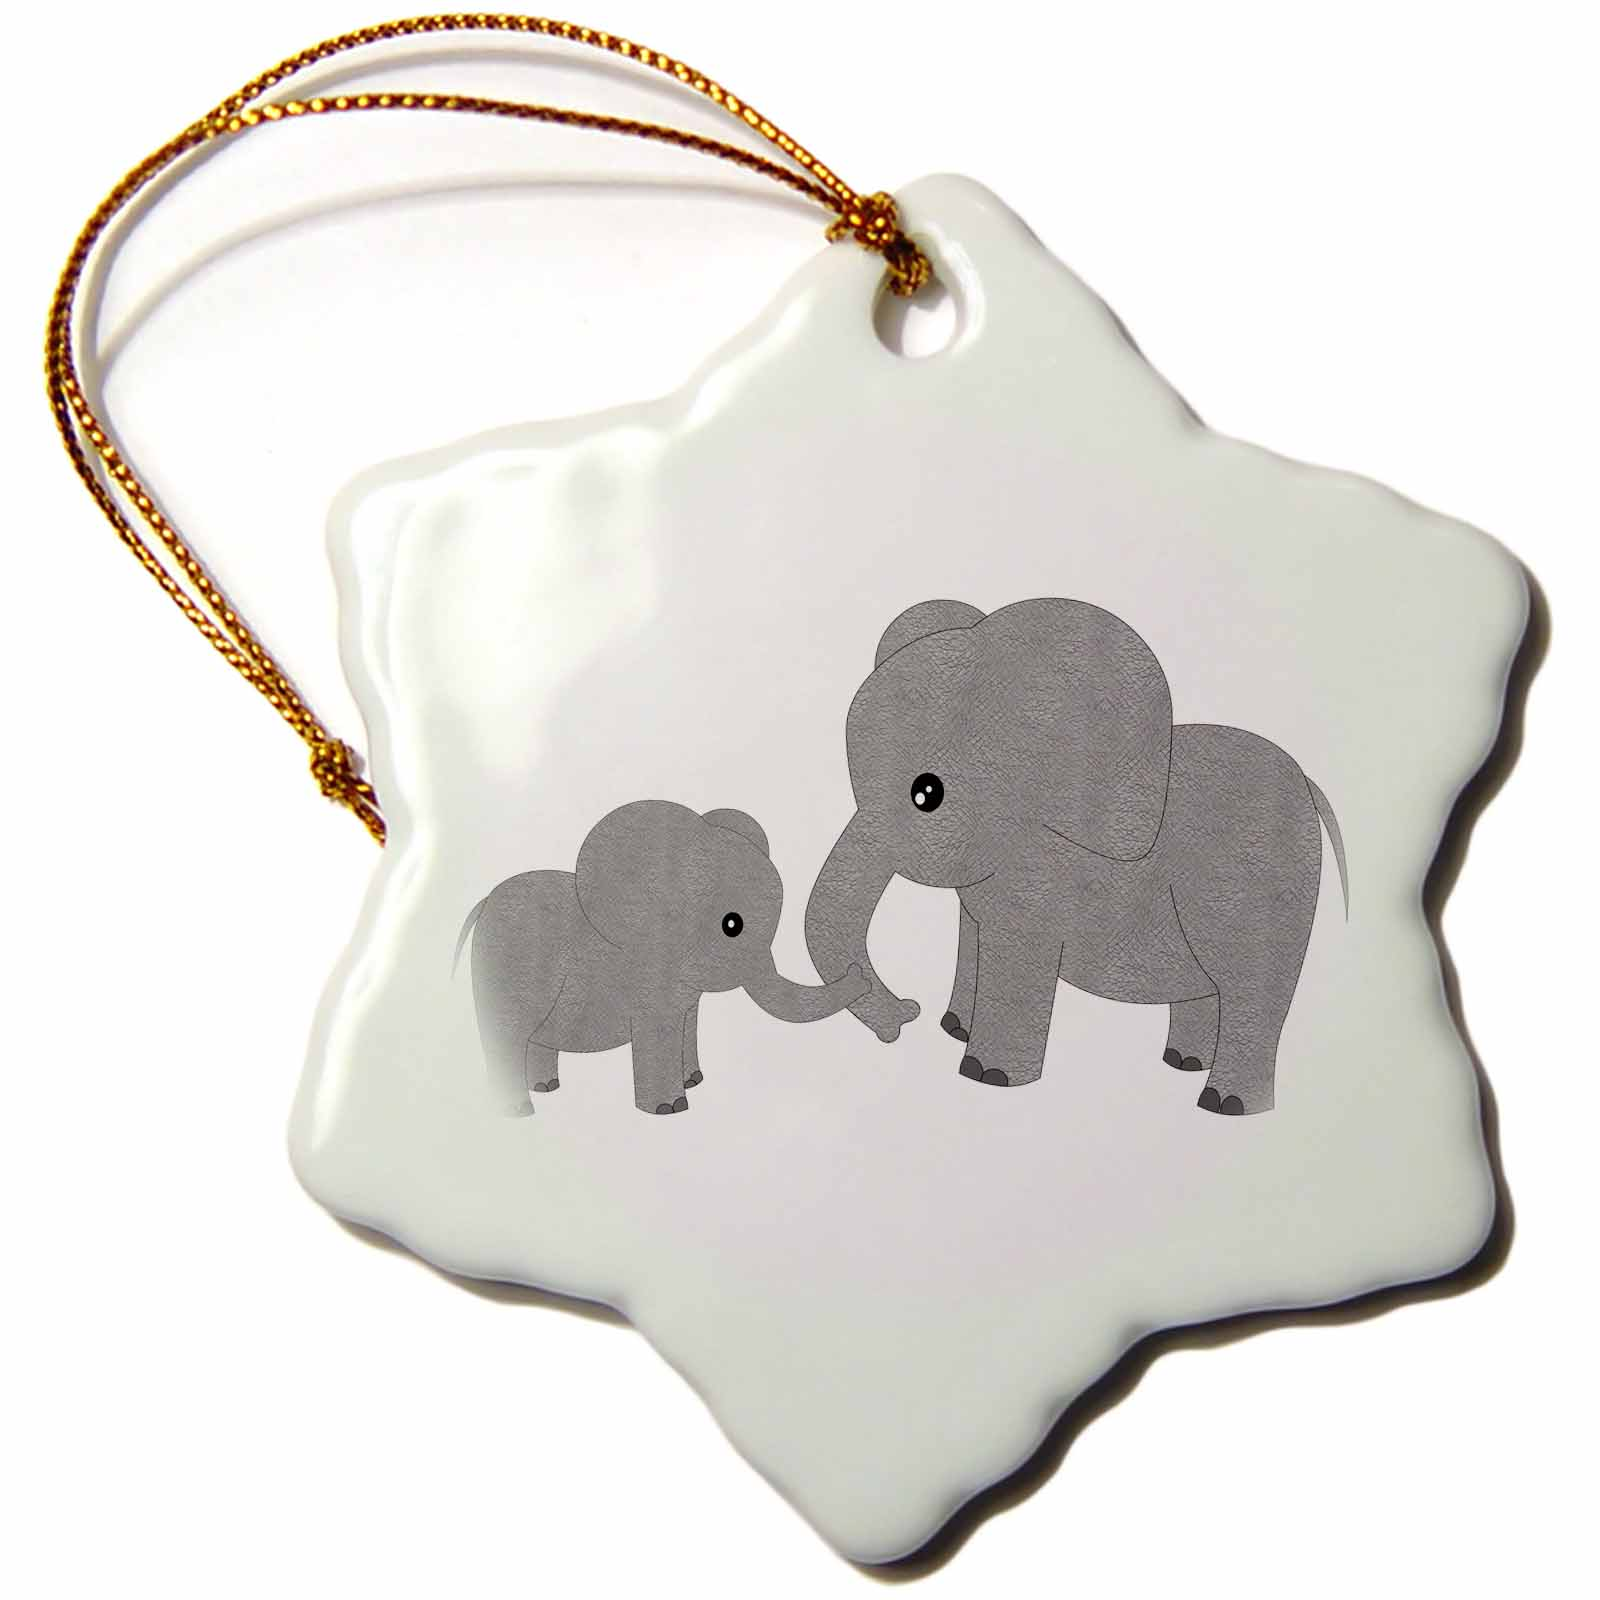 3dRose Mom and Baby Elephant, Snowflake Ornament, Porcelain, 3-inch